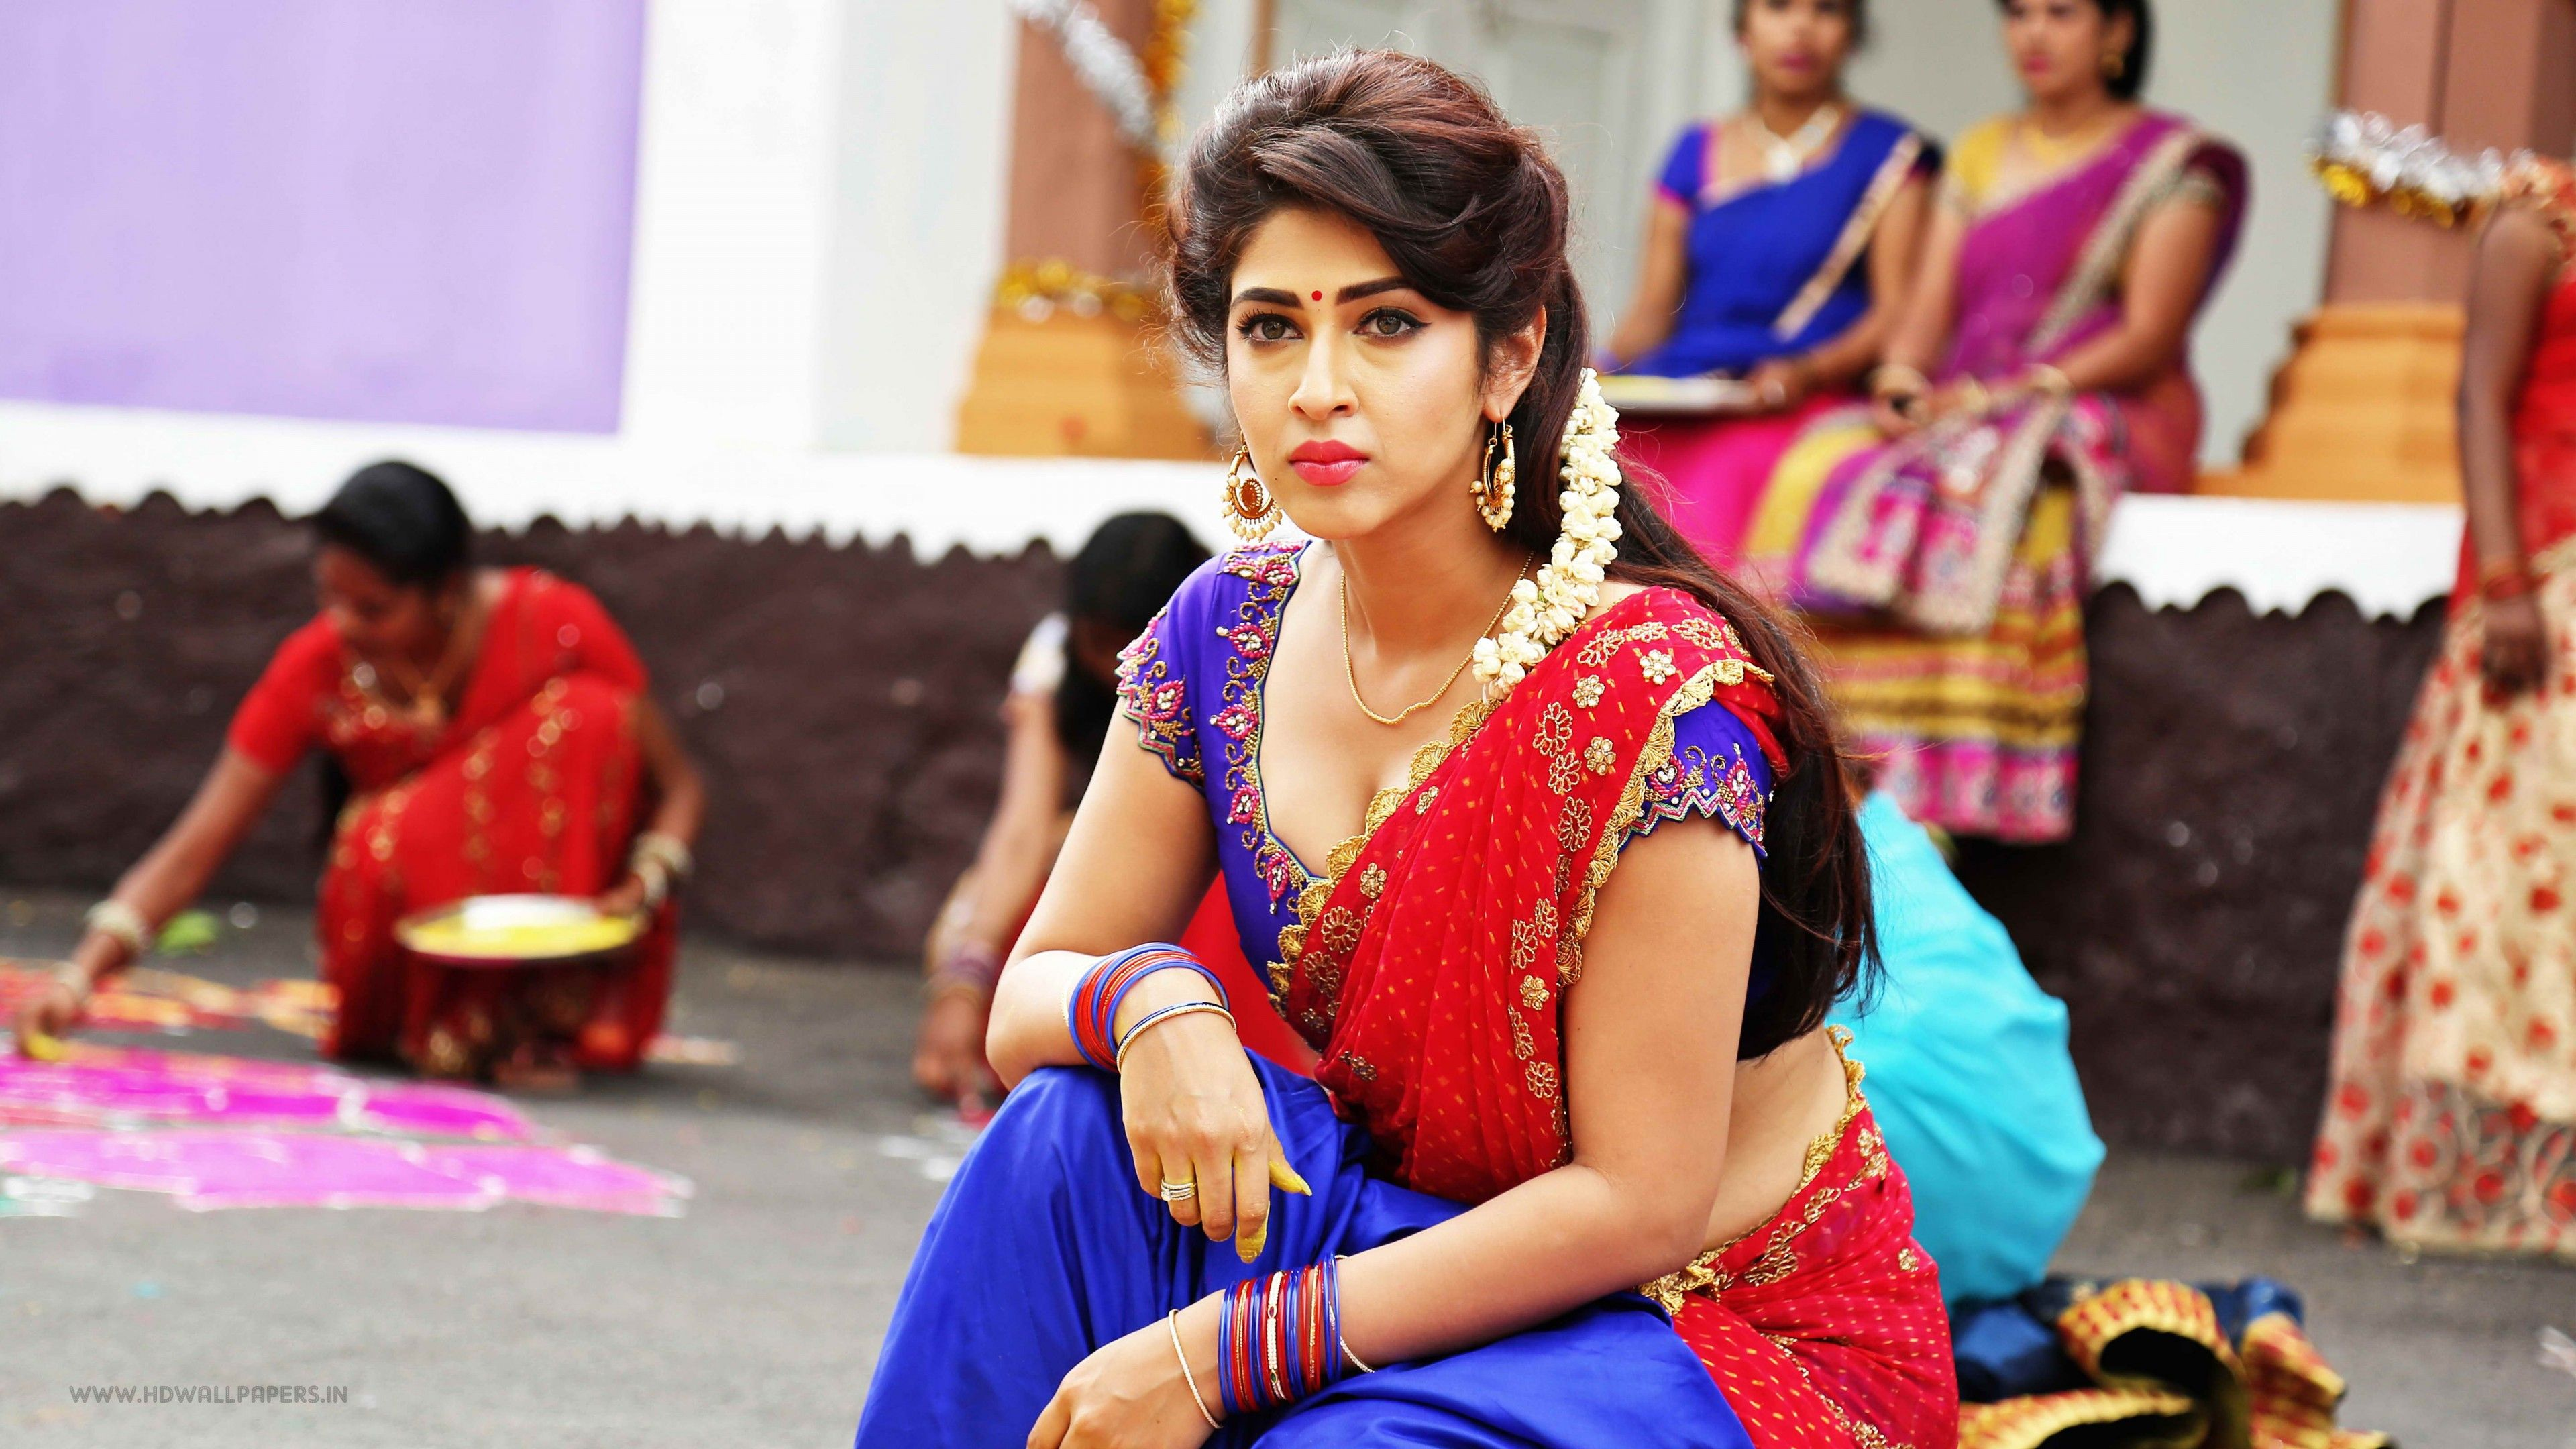 Sonarika Bhadoria in Saree Wallpapers